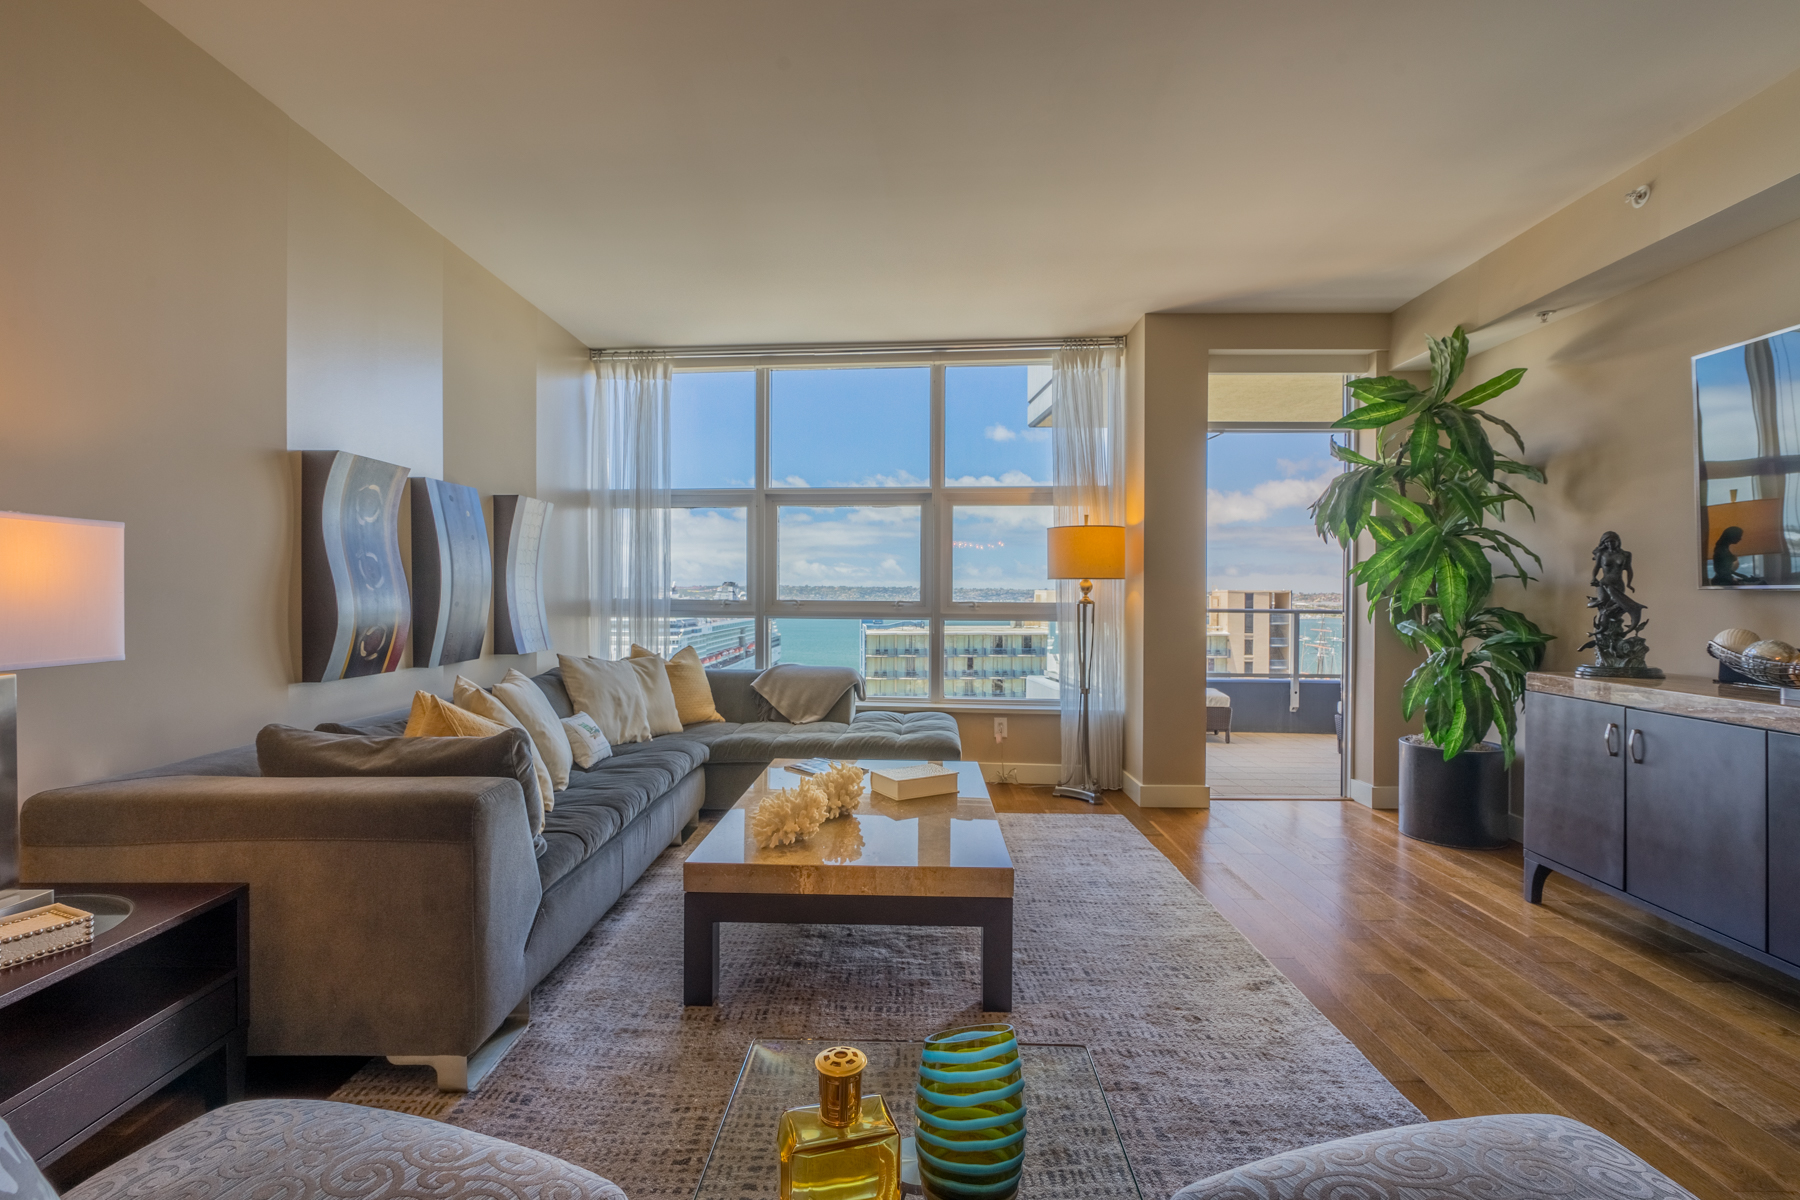 Condominium for Sale at Bayside 1325 Pacific Highway 1501, Columbia, San Diego, California, 92101 United States